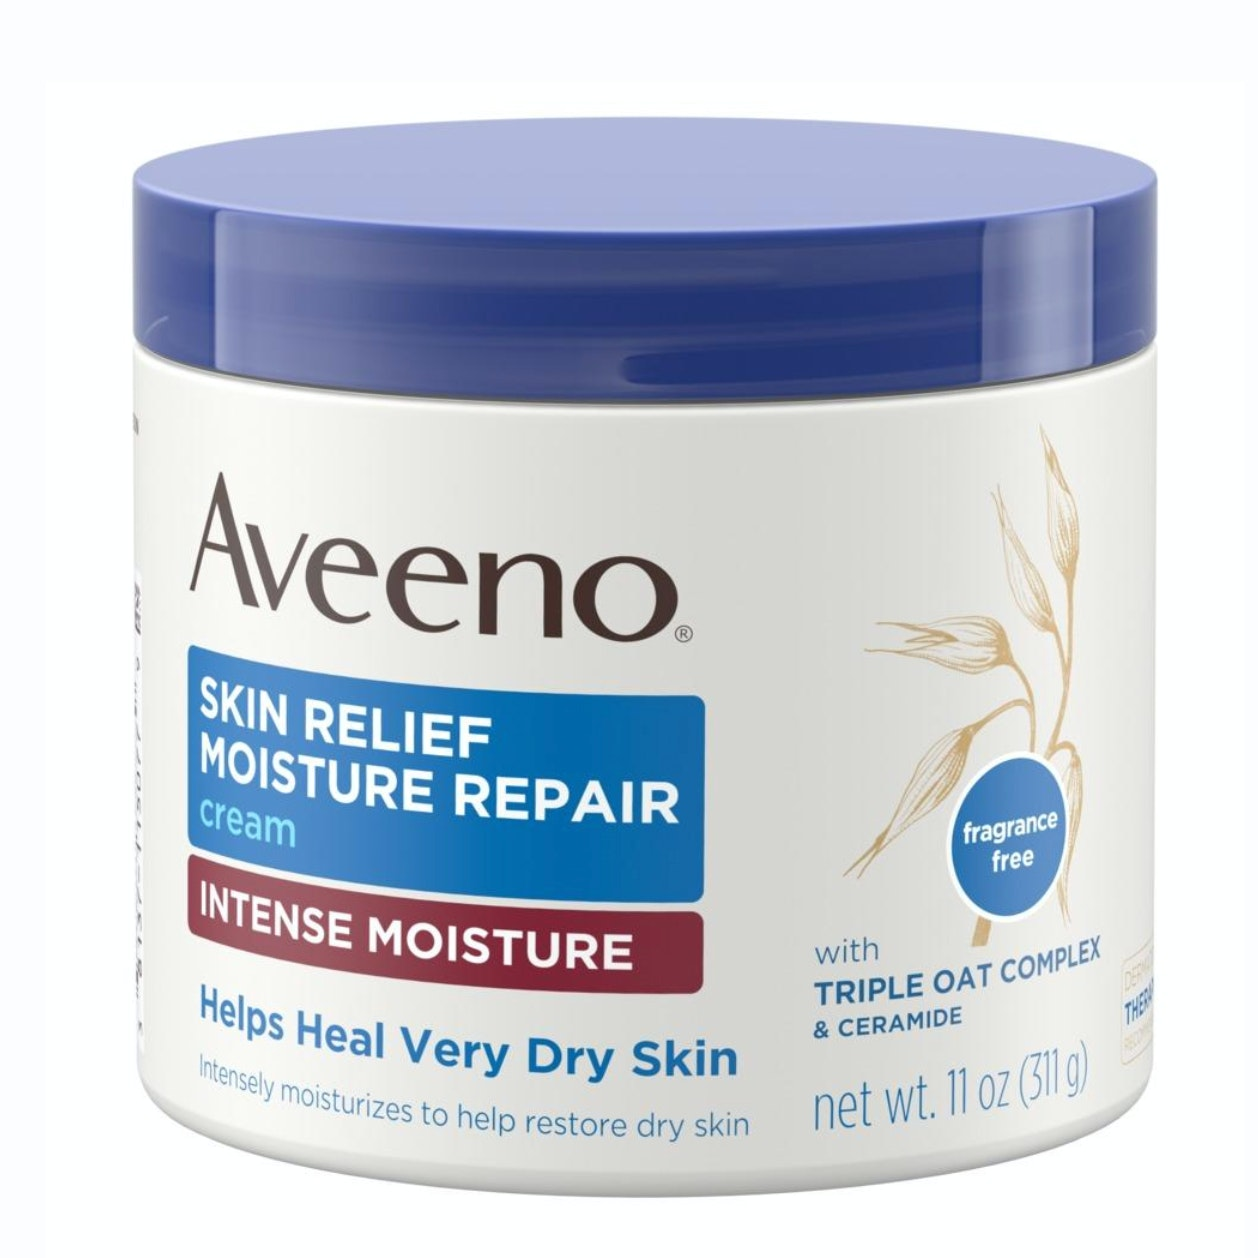 Aveeno® Skin Relief Moisture Repair Cream